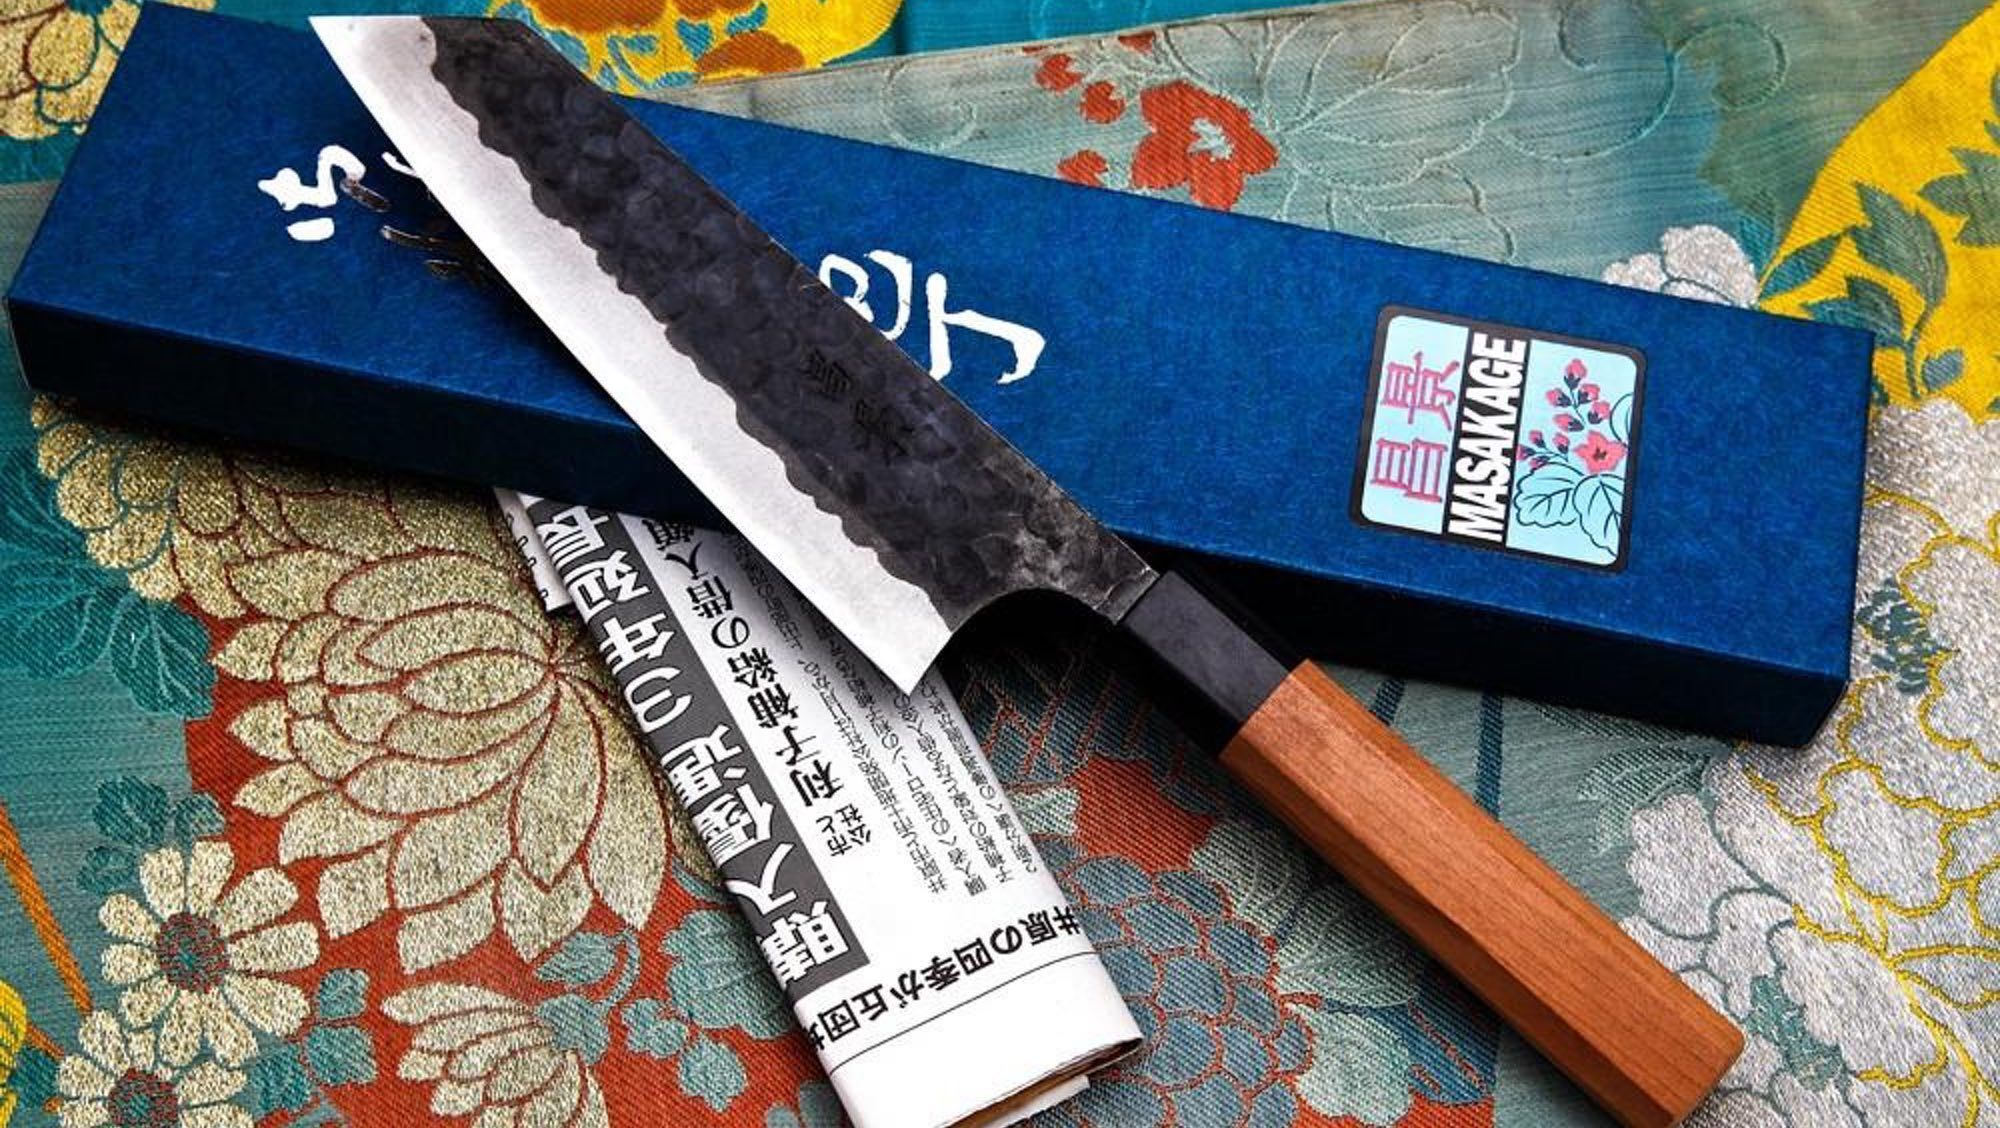 Masakage Month: Meet the Blacksmiths